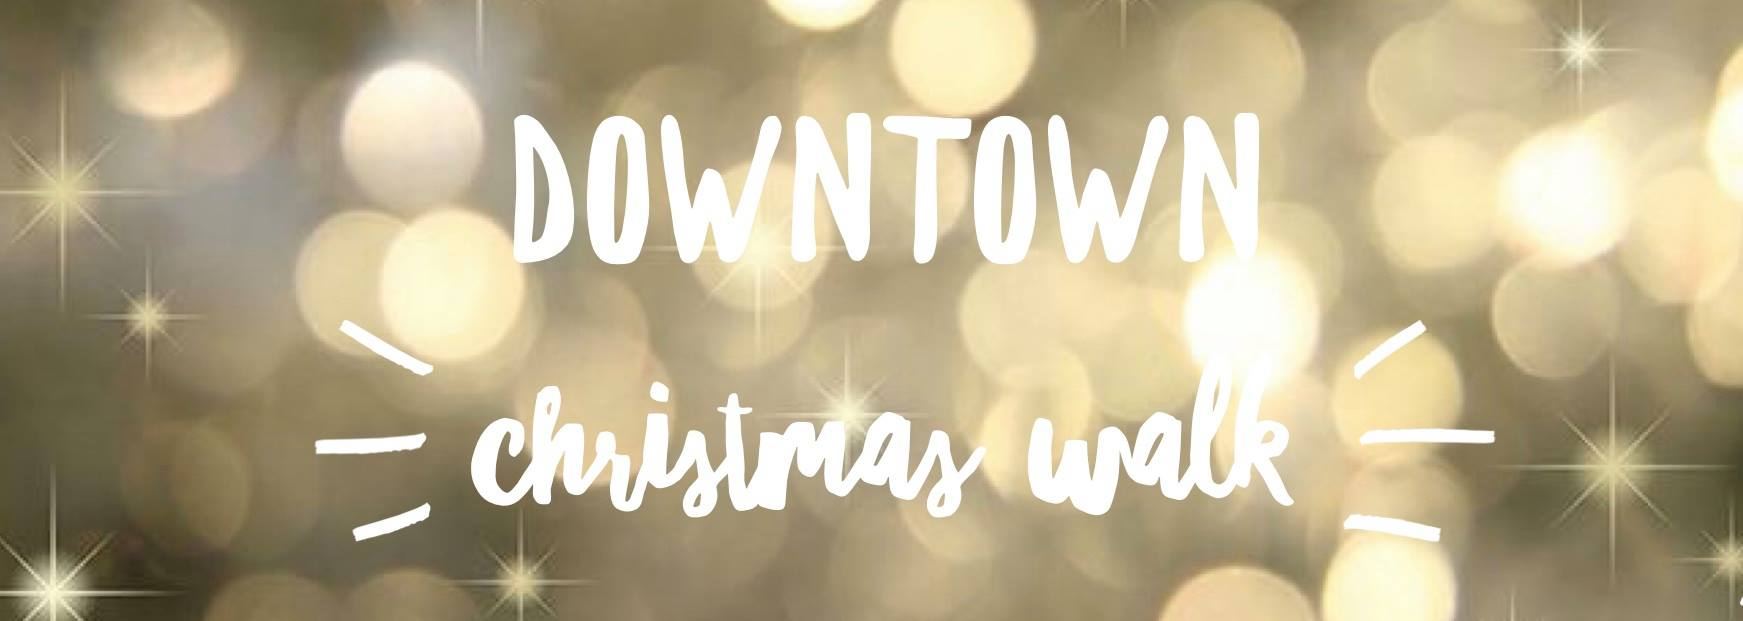 artfarm-downtown-christmaswalk